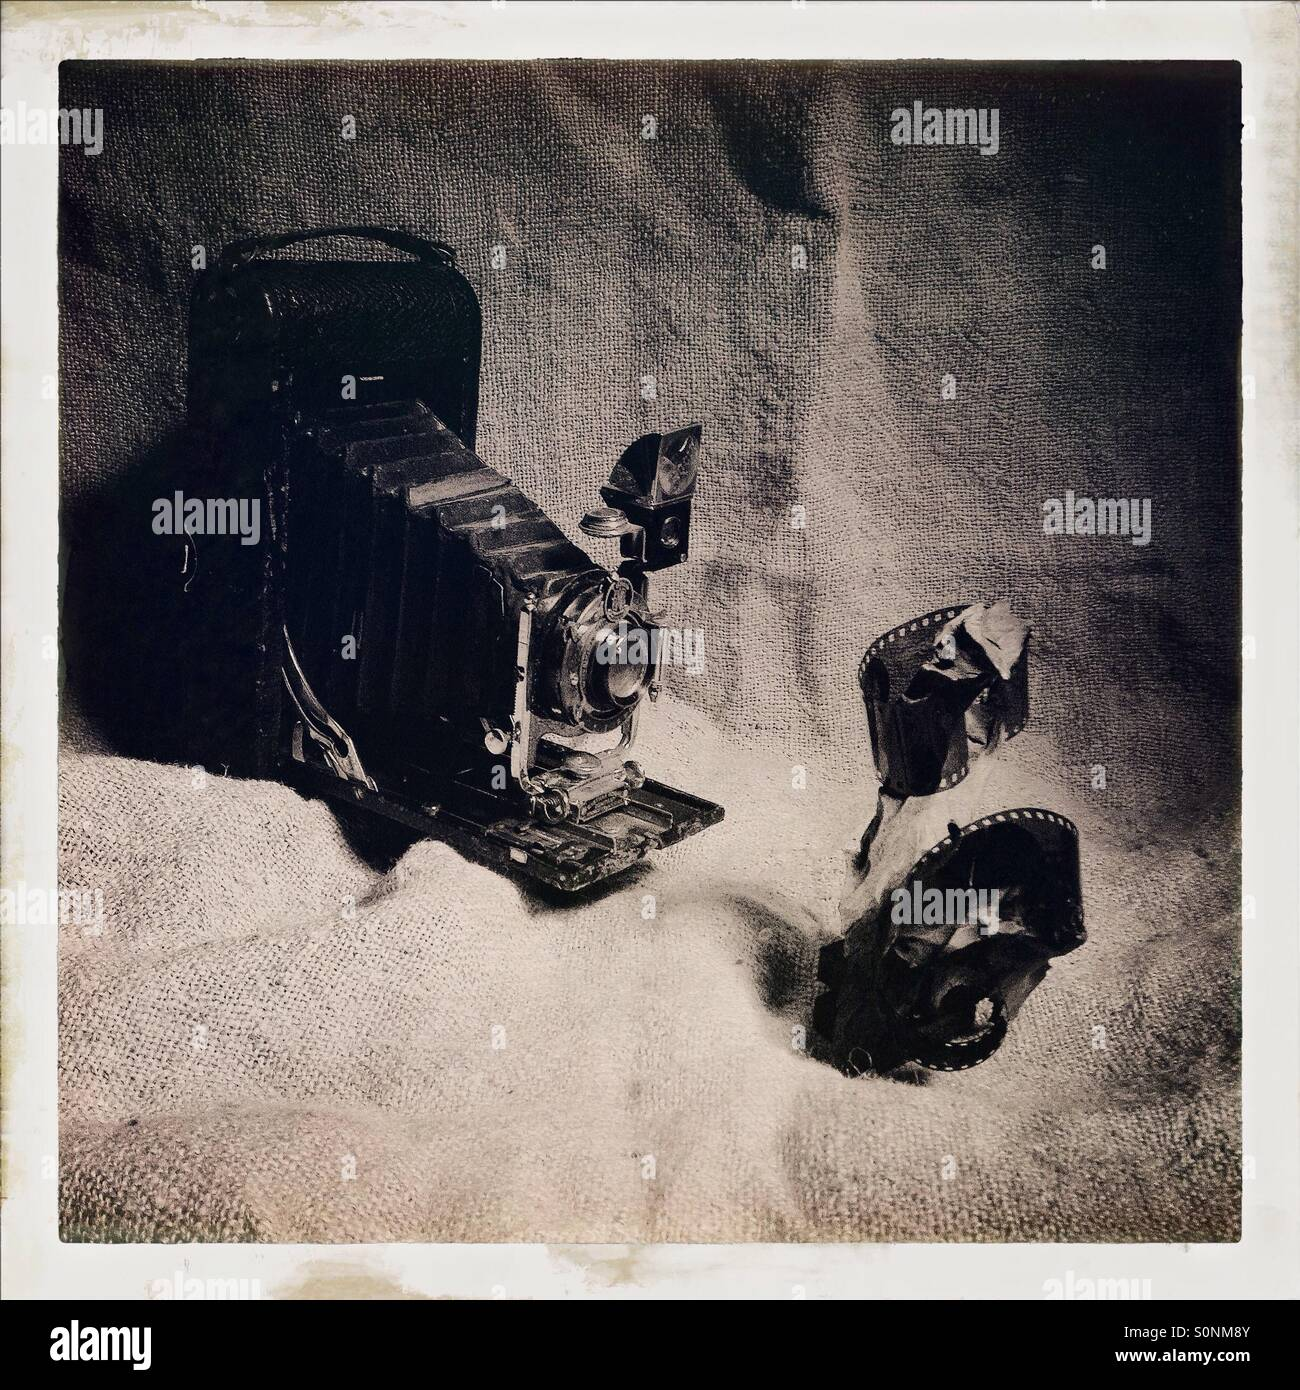 Vintage photography themed image , old style bellows folding camera - Stock Image